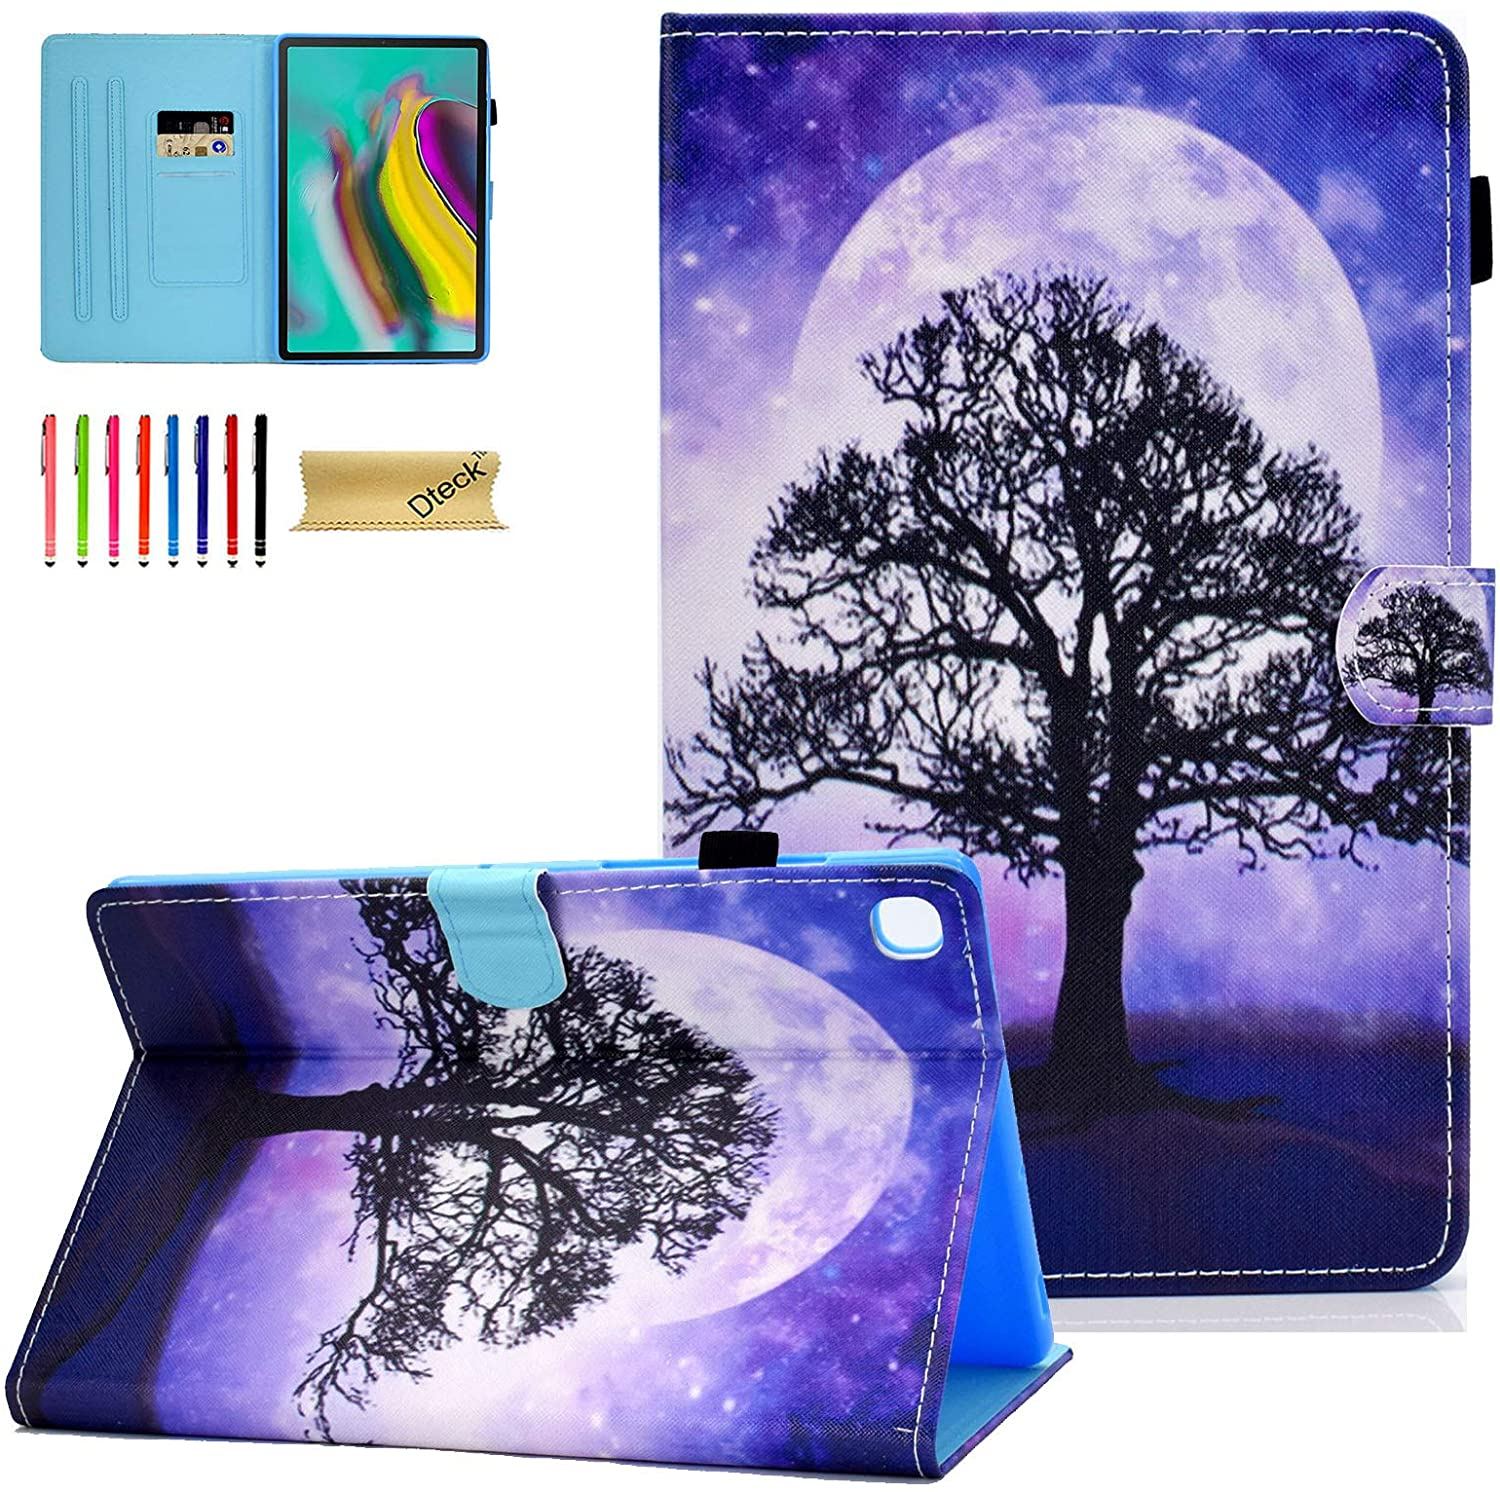 Galaxy Tab S5e 10.5 Case, SM-T720 Case, Dteck Slim PU Leather Folio Stand Protective Case with Auto Wake/Sleep Smart Cover for Samsung Galaxy Tab S5e 10.5 inch Tablet 2019 T720/T725, Life Tree